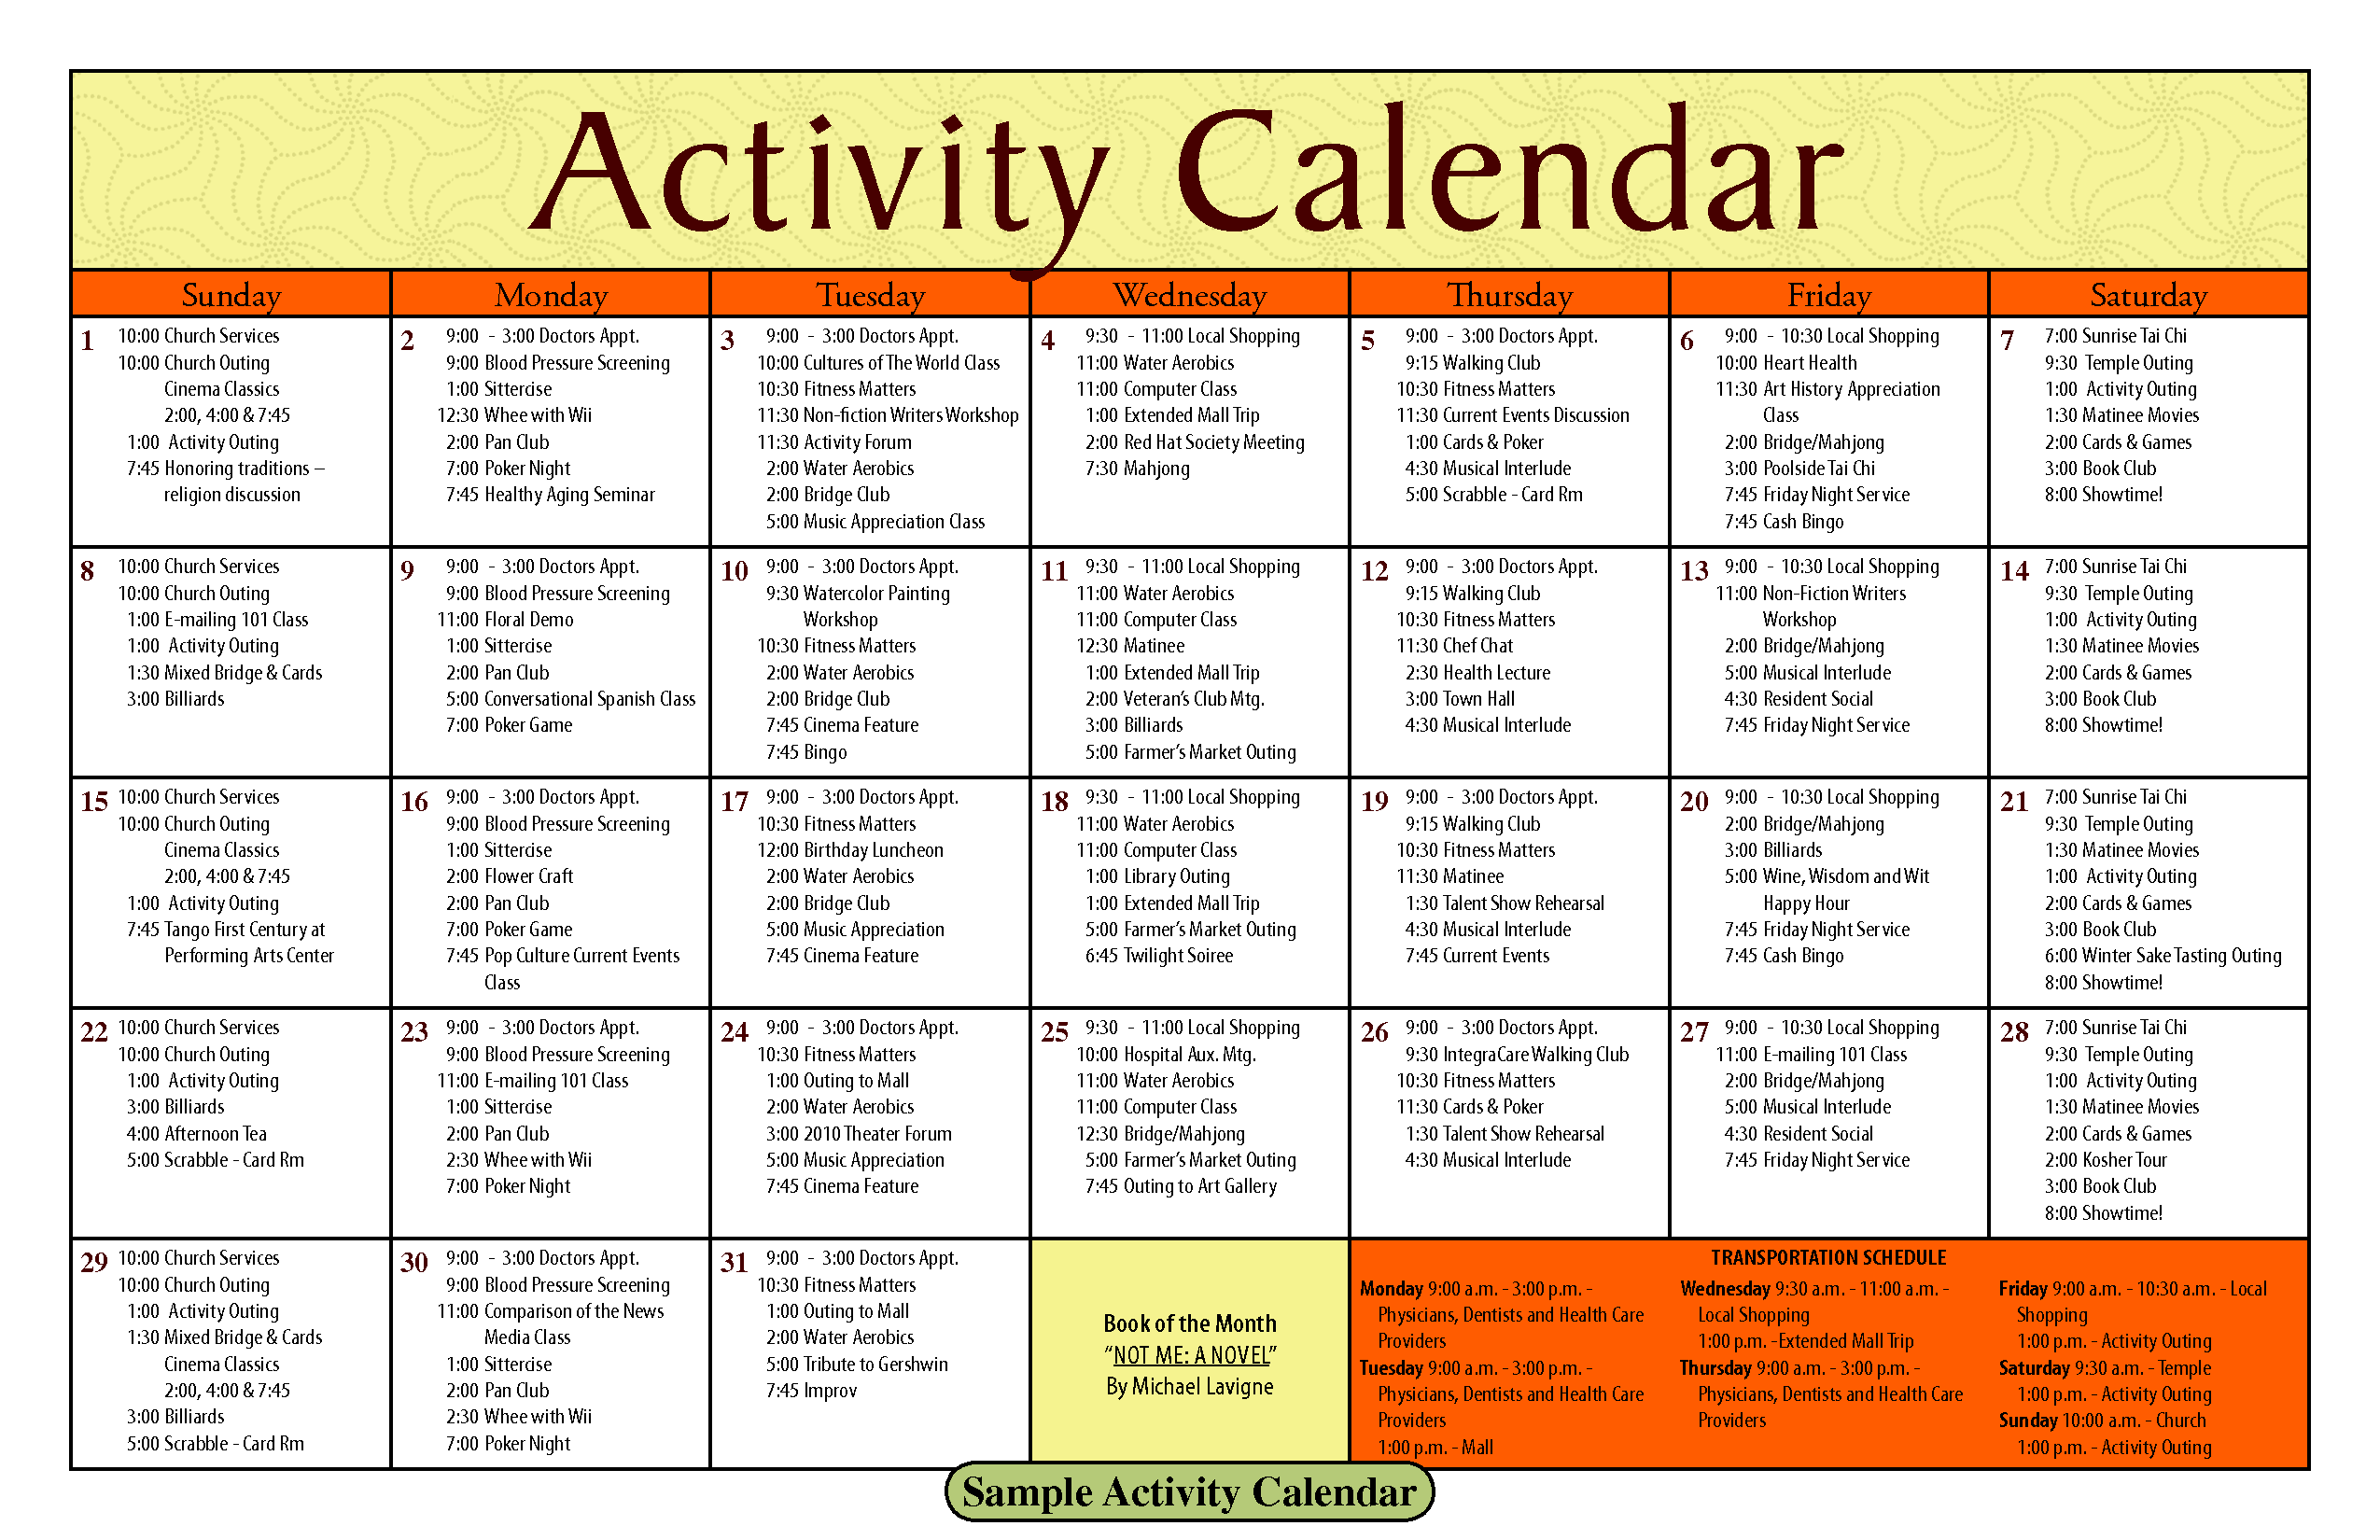 Calendar Lesson Ideas : Blank activity calendar template images printable